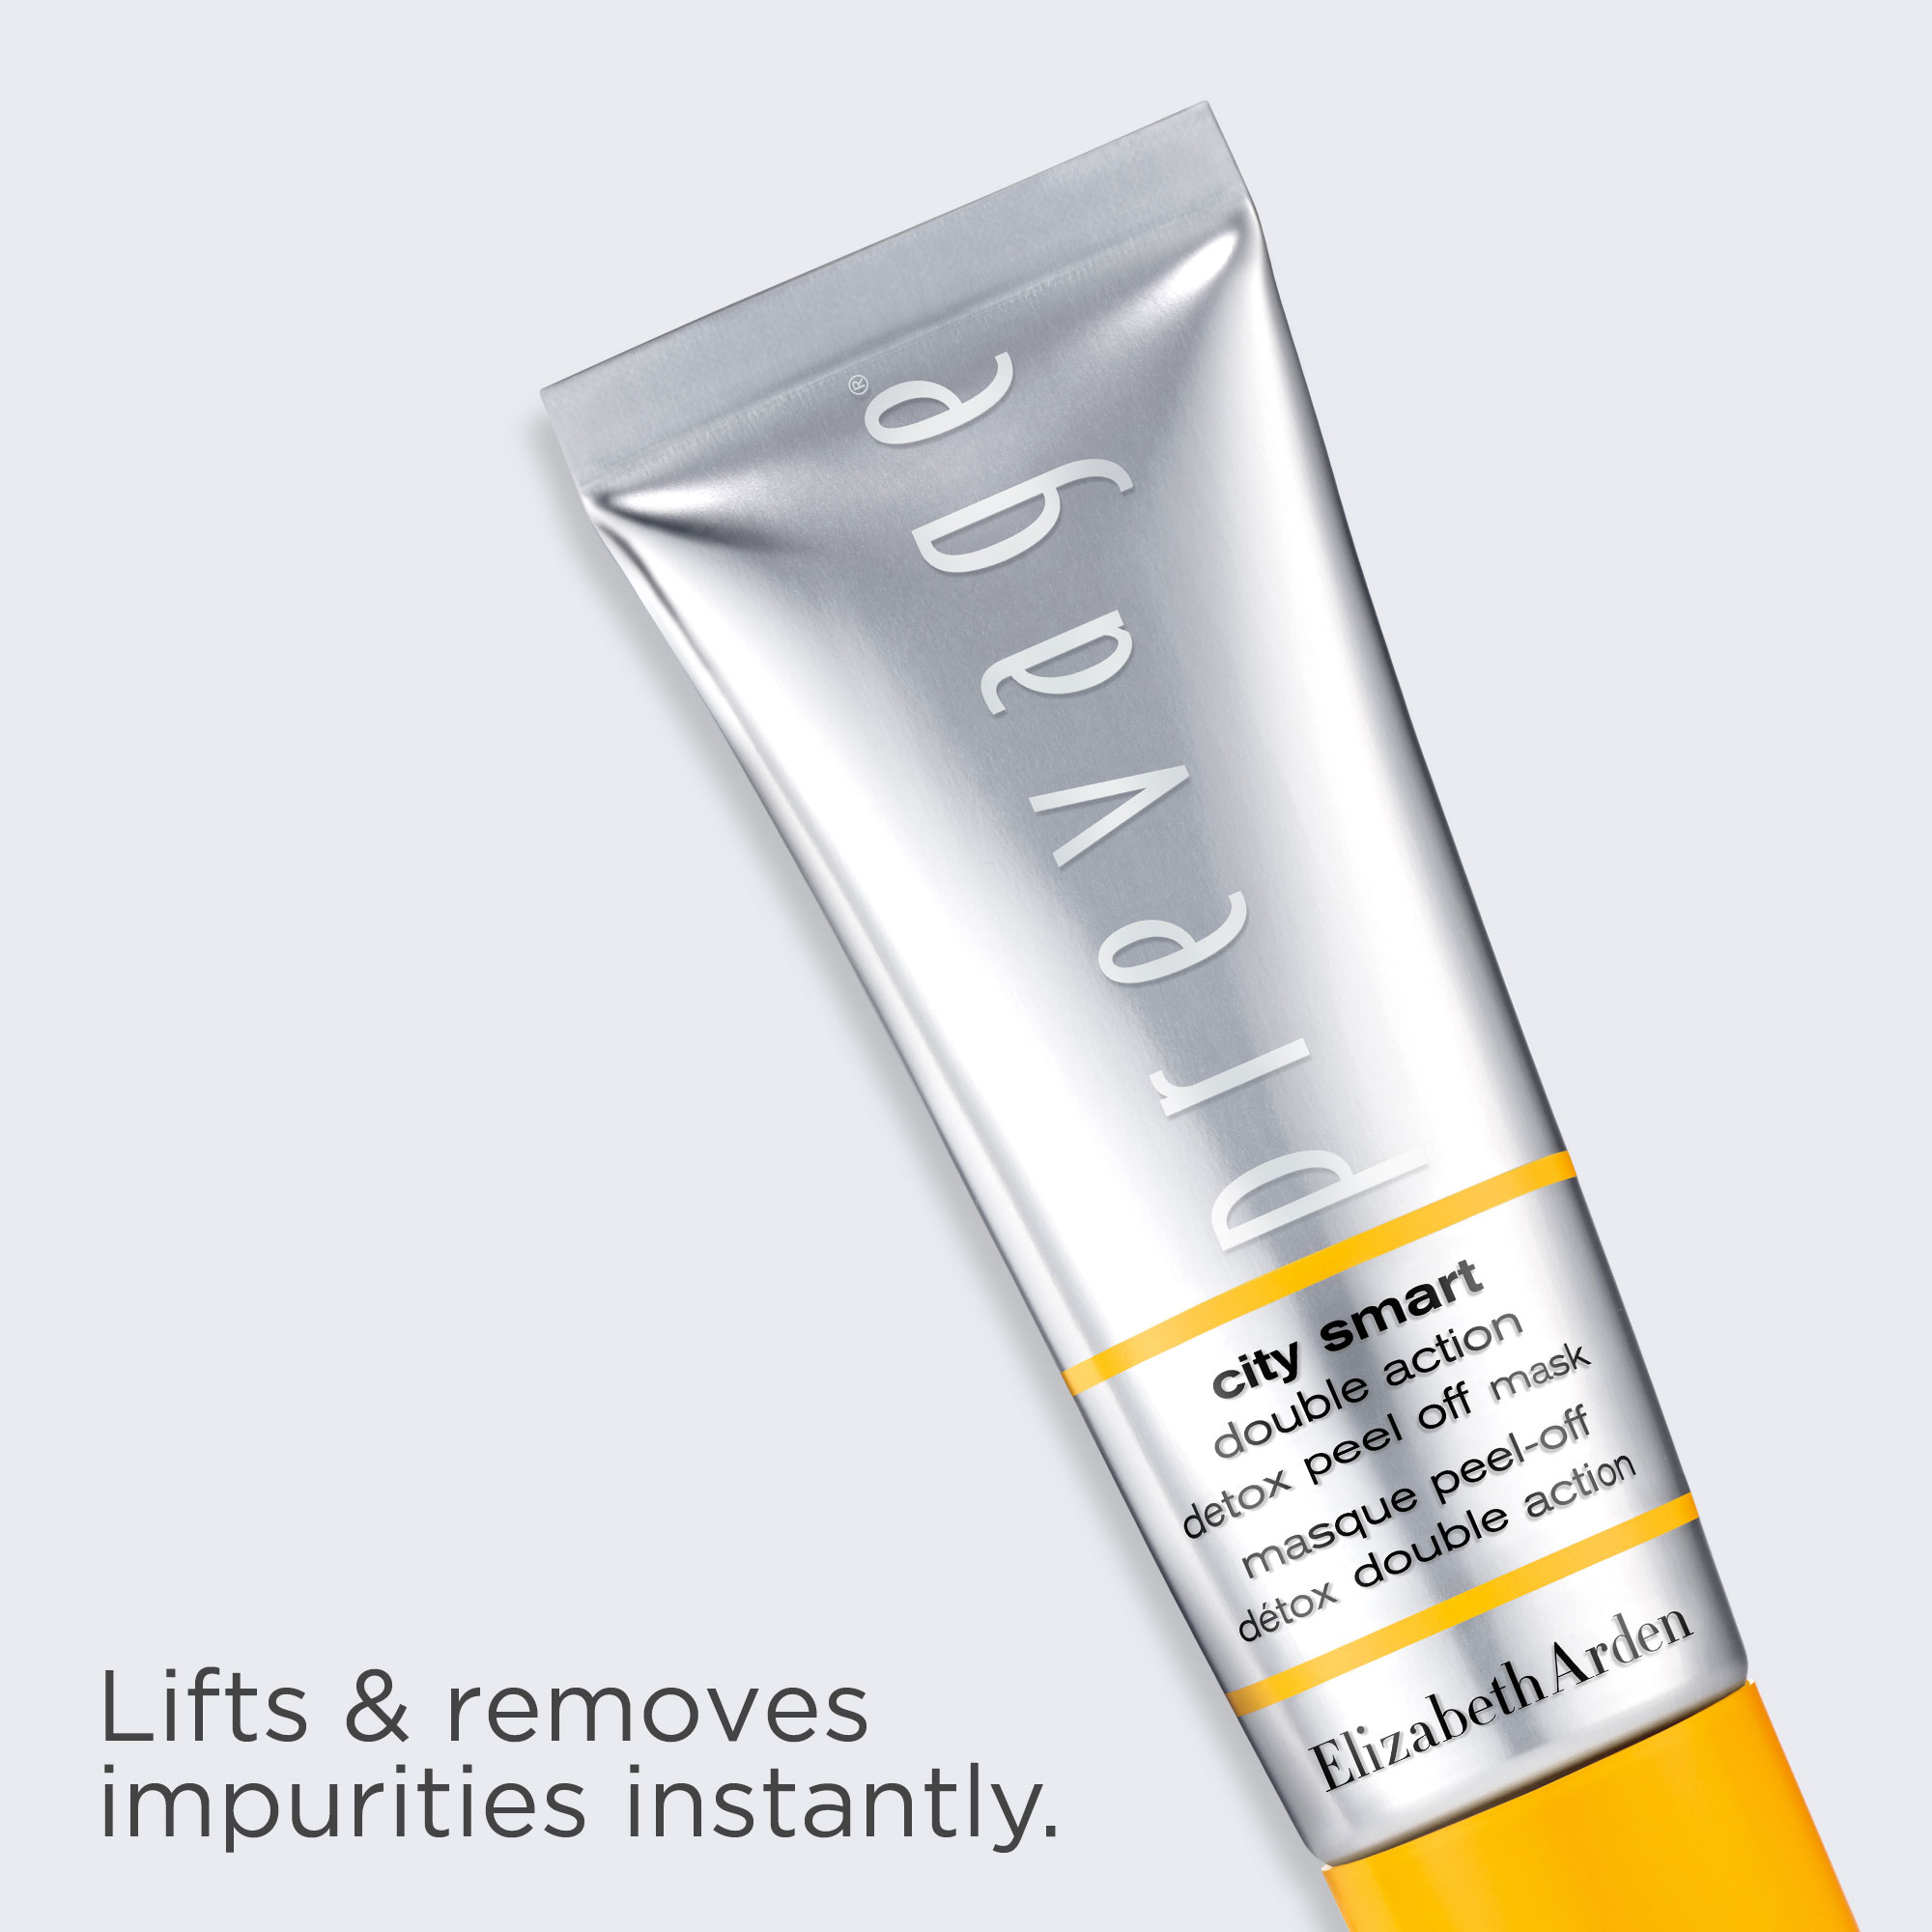 Future Mask Off Clean prevage® city smart double action detox peel off mask